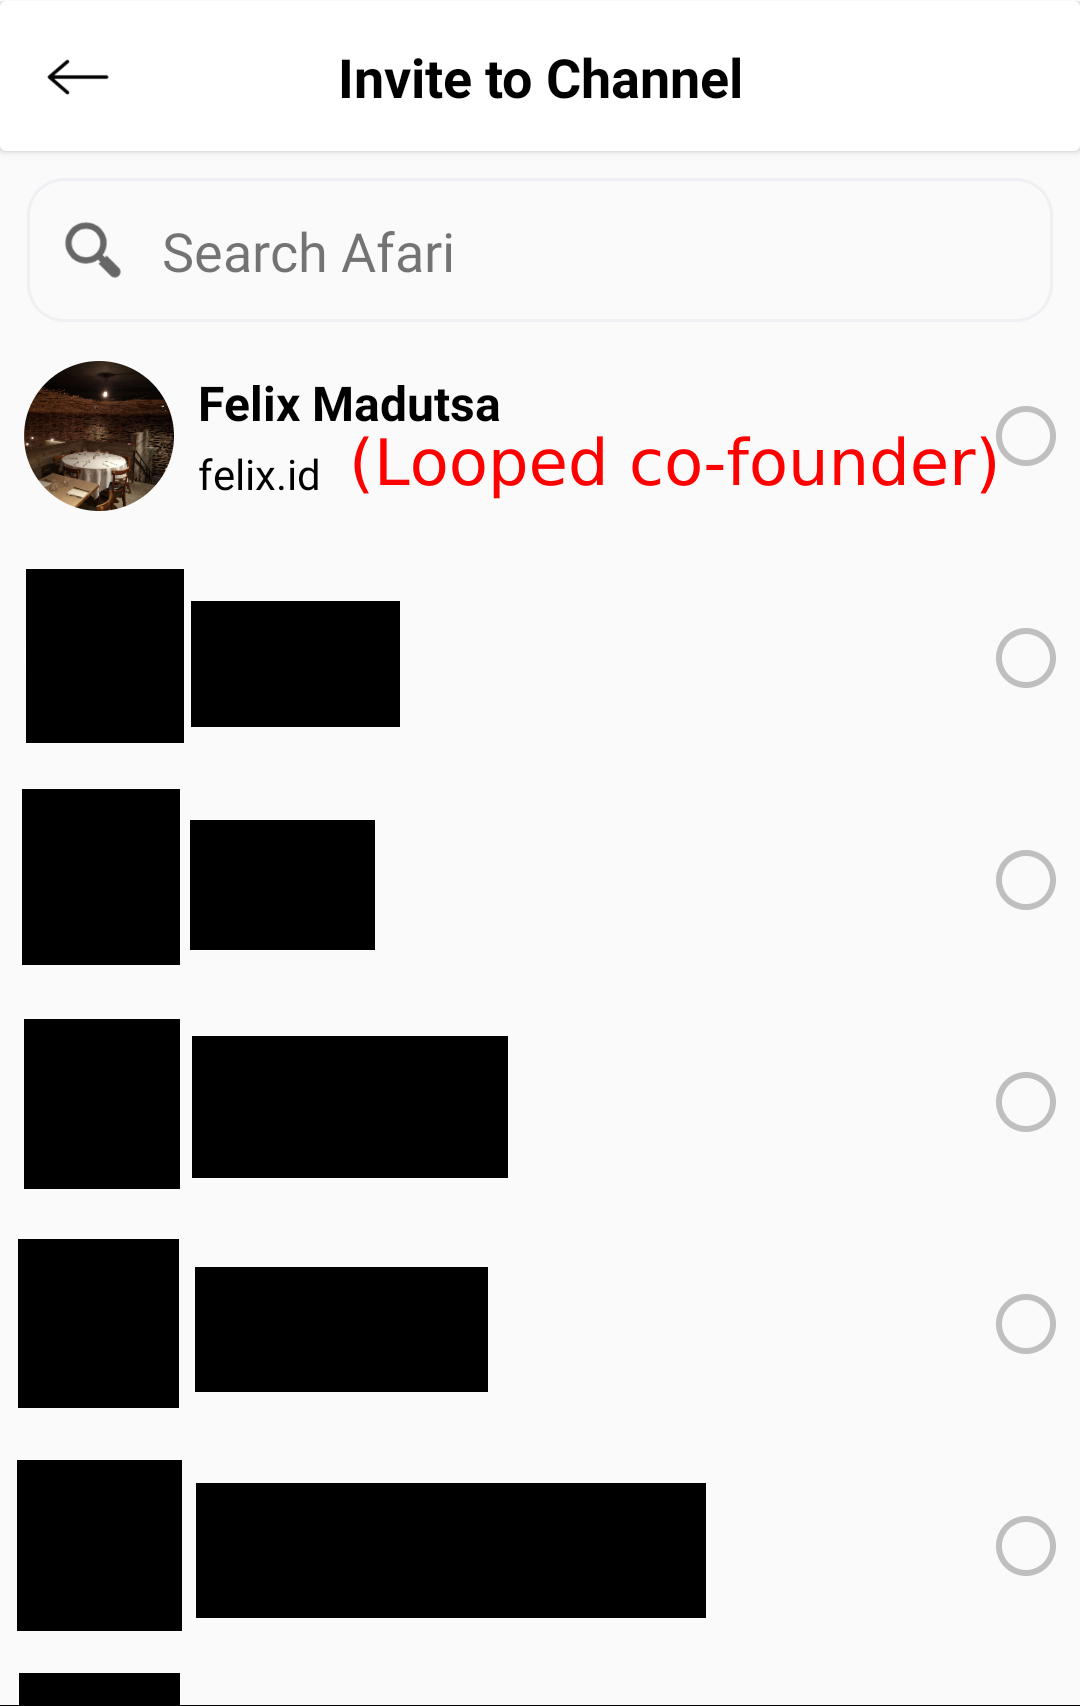 List of people to invite, including Looped co-founder Felix Madutsa